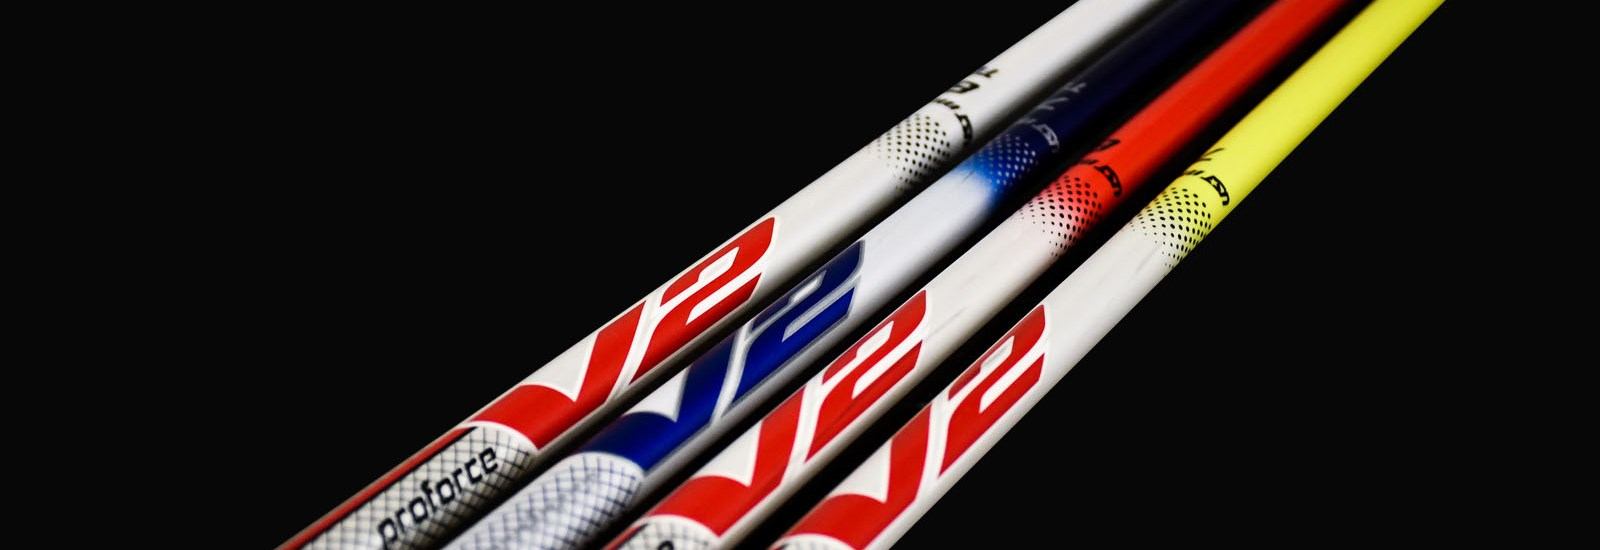 UST Mamiya PROFORCE Wood, Iron and Hybrid Shafts